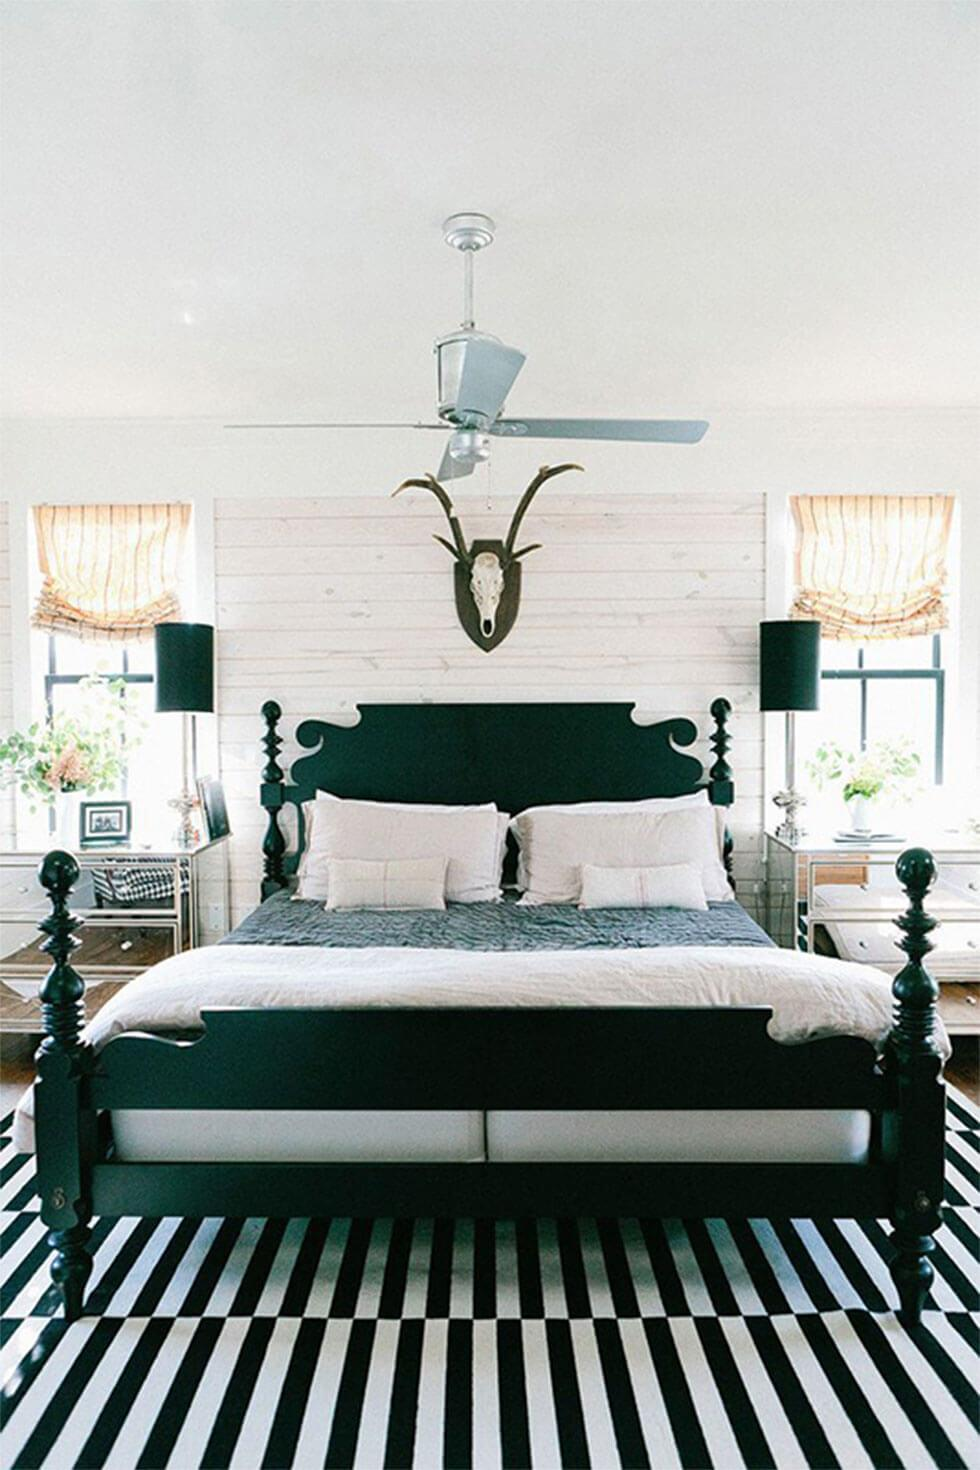 Black and white bedroom with black headboard and striped rug.